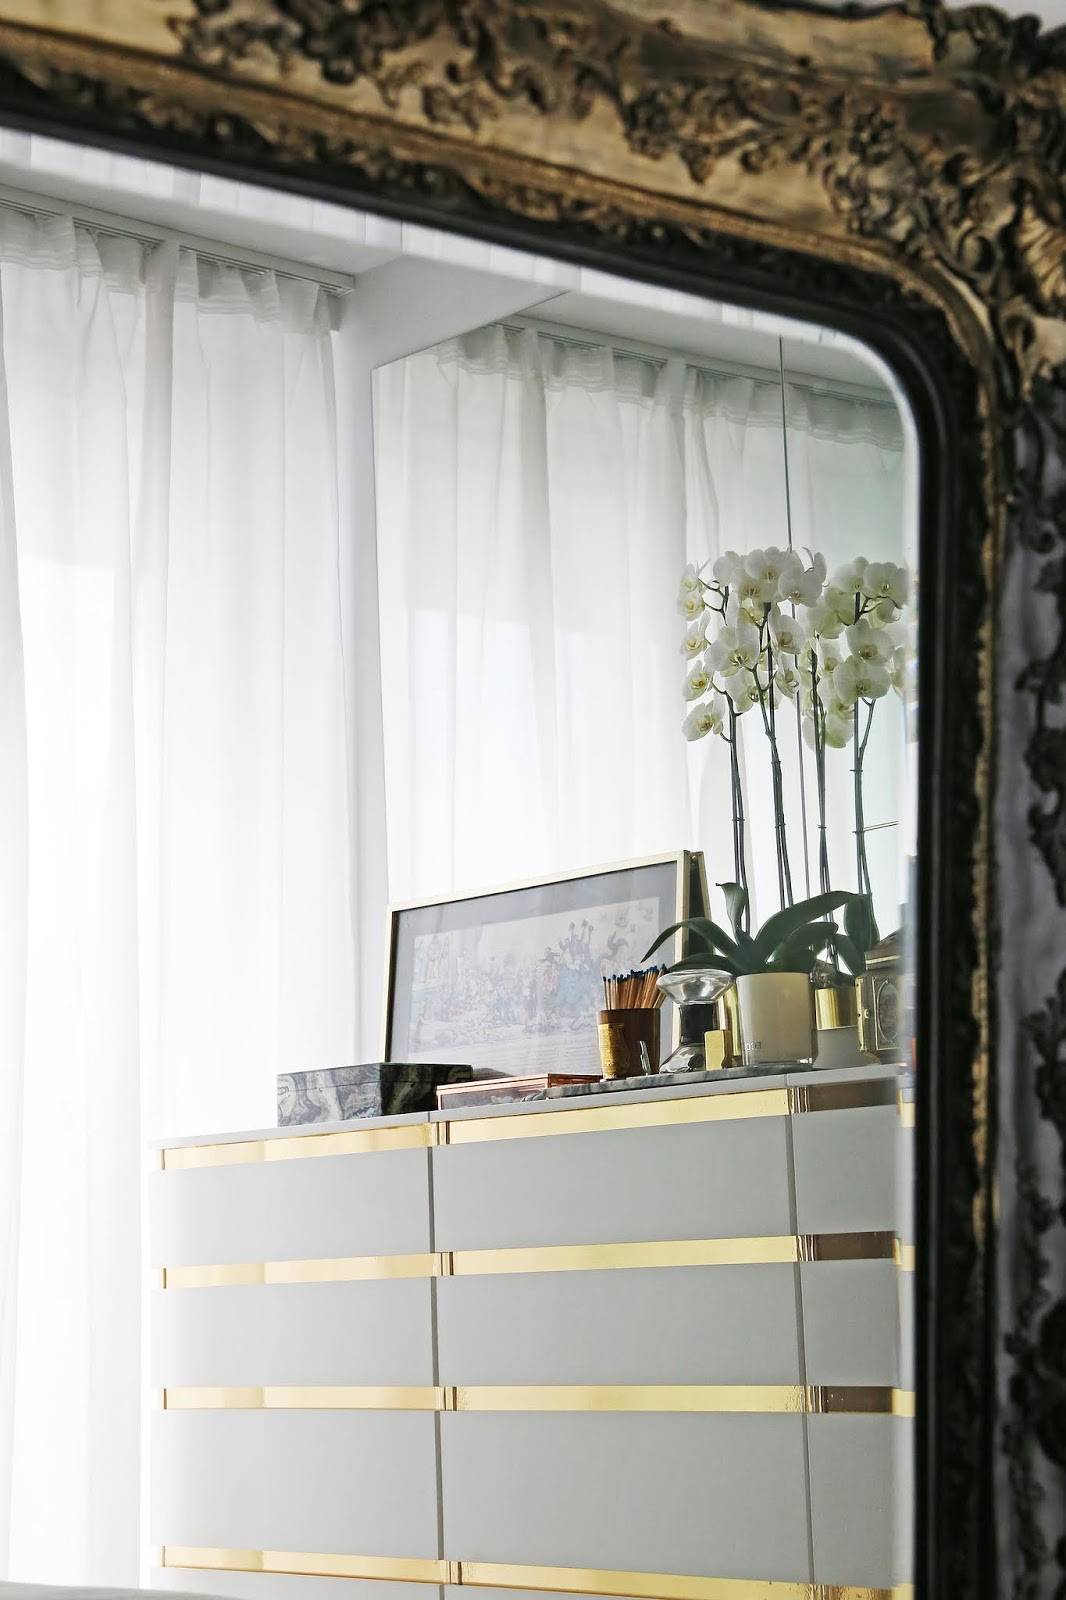 Interiors: My London Home Tour, Part 2: Bedroom